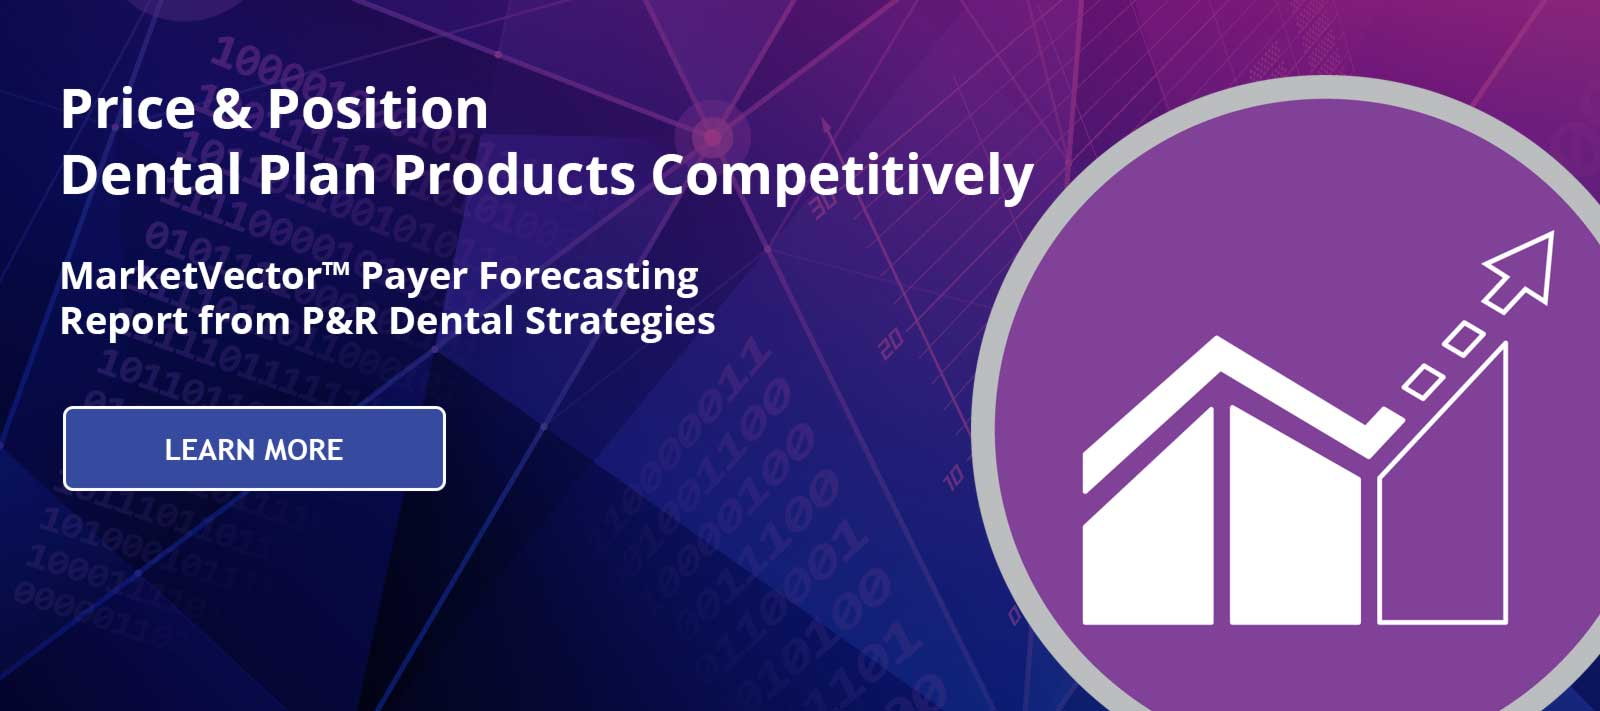 Price & Position Dental Plan Products Competitively - MarketVector Payer Forecasting Report from P&R Dental Strategies